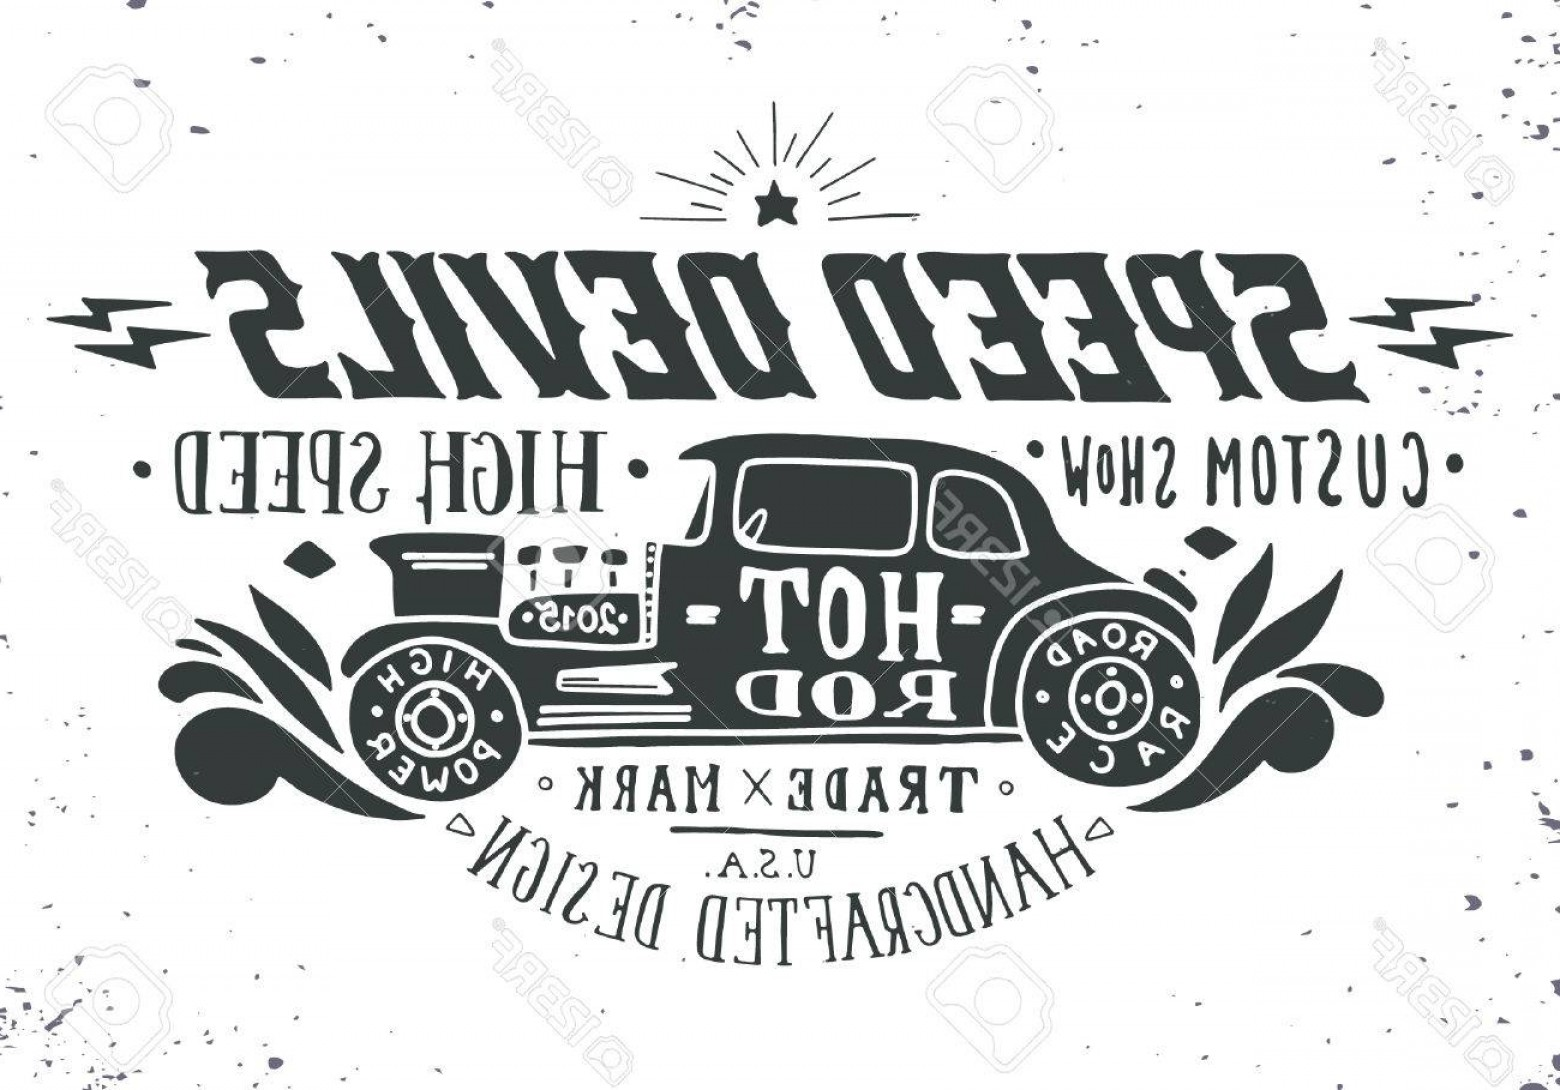 Car Show Vector Shirt: Photostock Vector Speed Devils Hand Drawn Grunge Vintage Illustration With Hand Lettering And A Old Timer Car This Ill